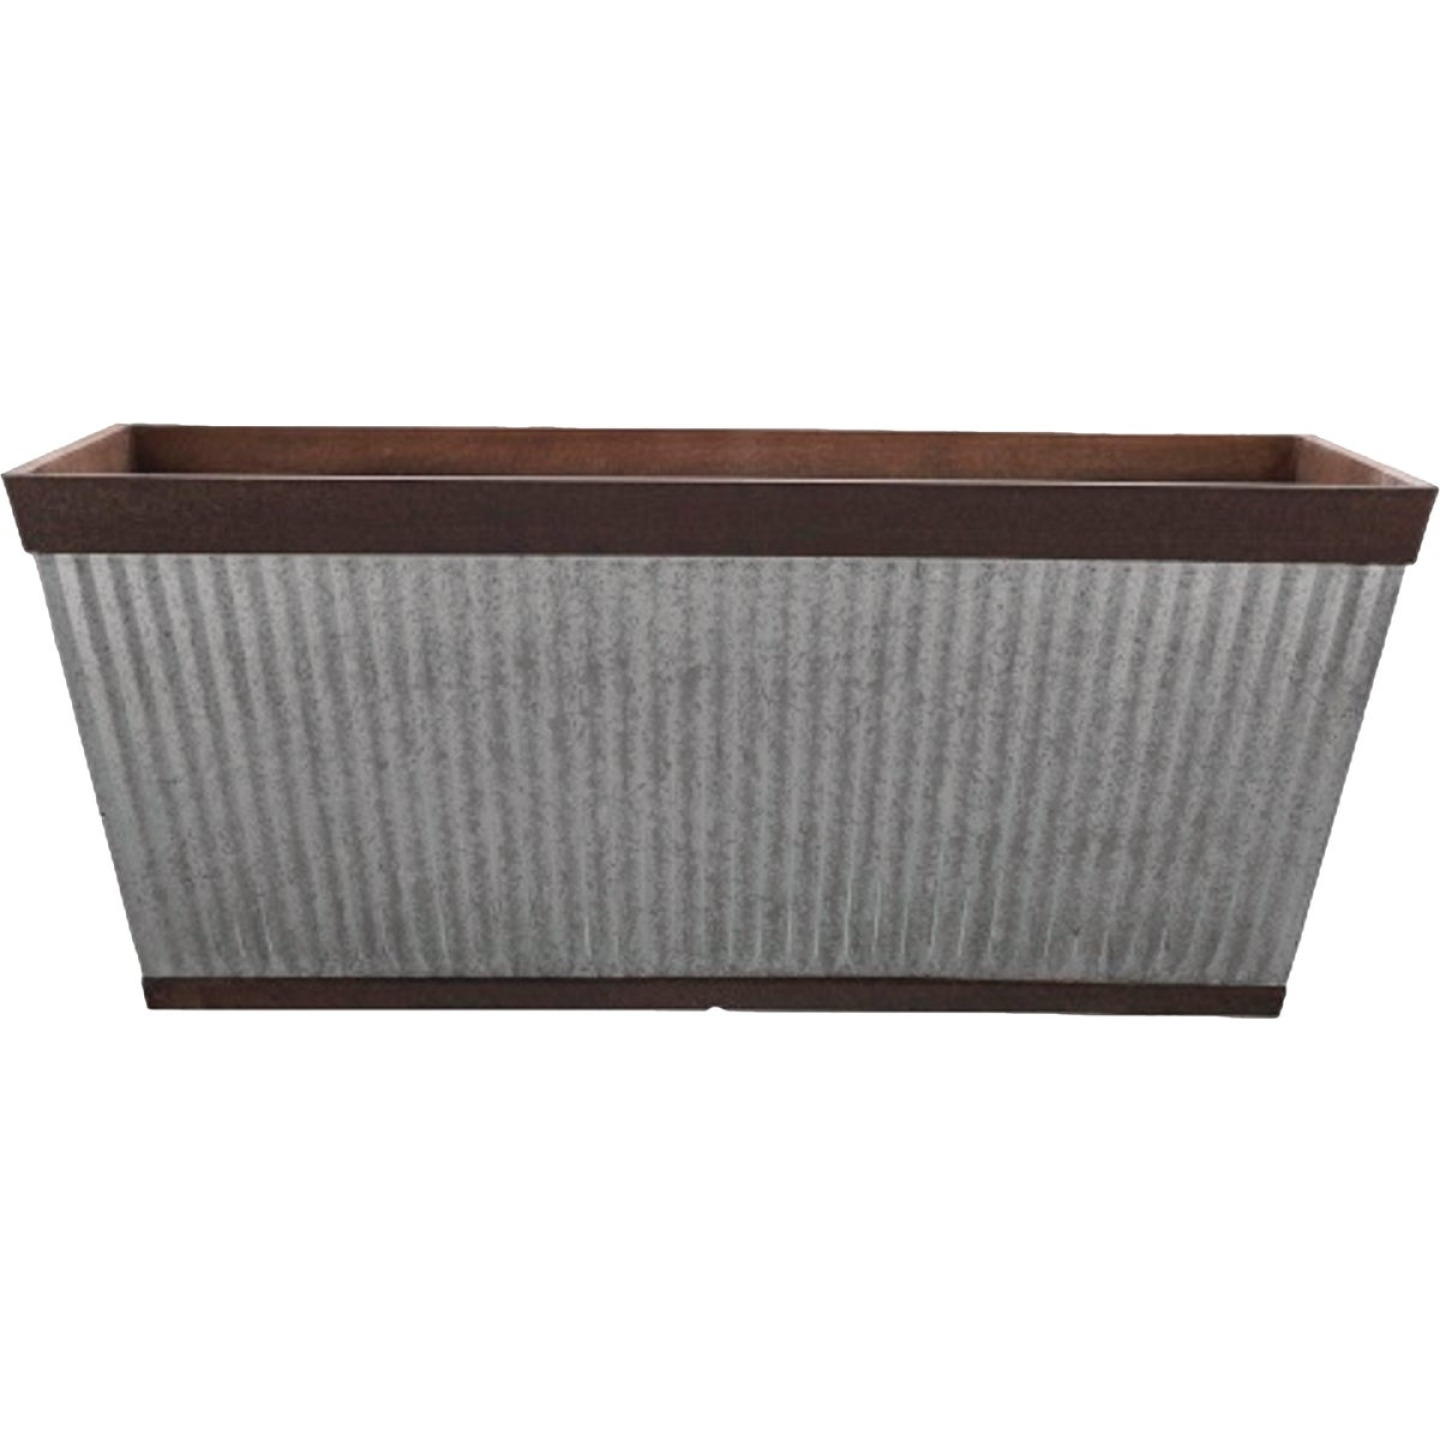 Southern Patio Westlake 24 In. Resin Rustic Galvanized Pleated Deck Rail Planter Image 1